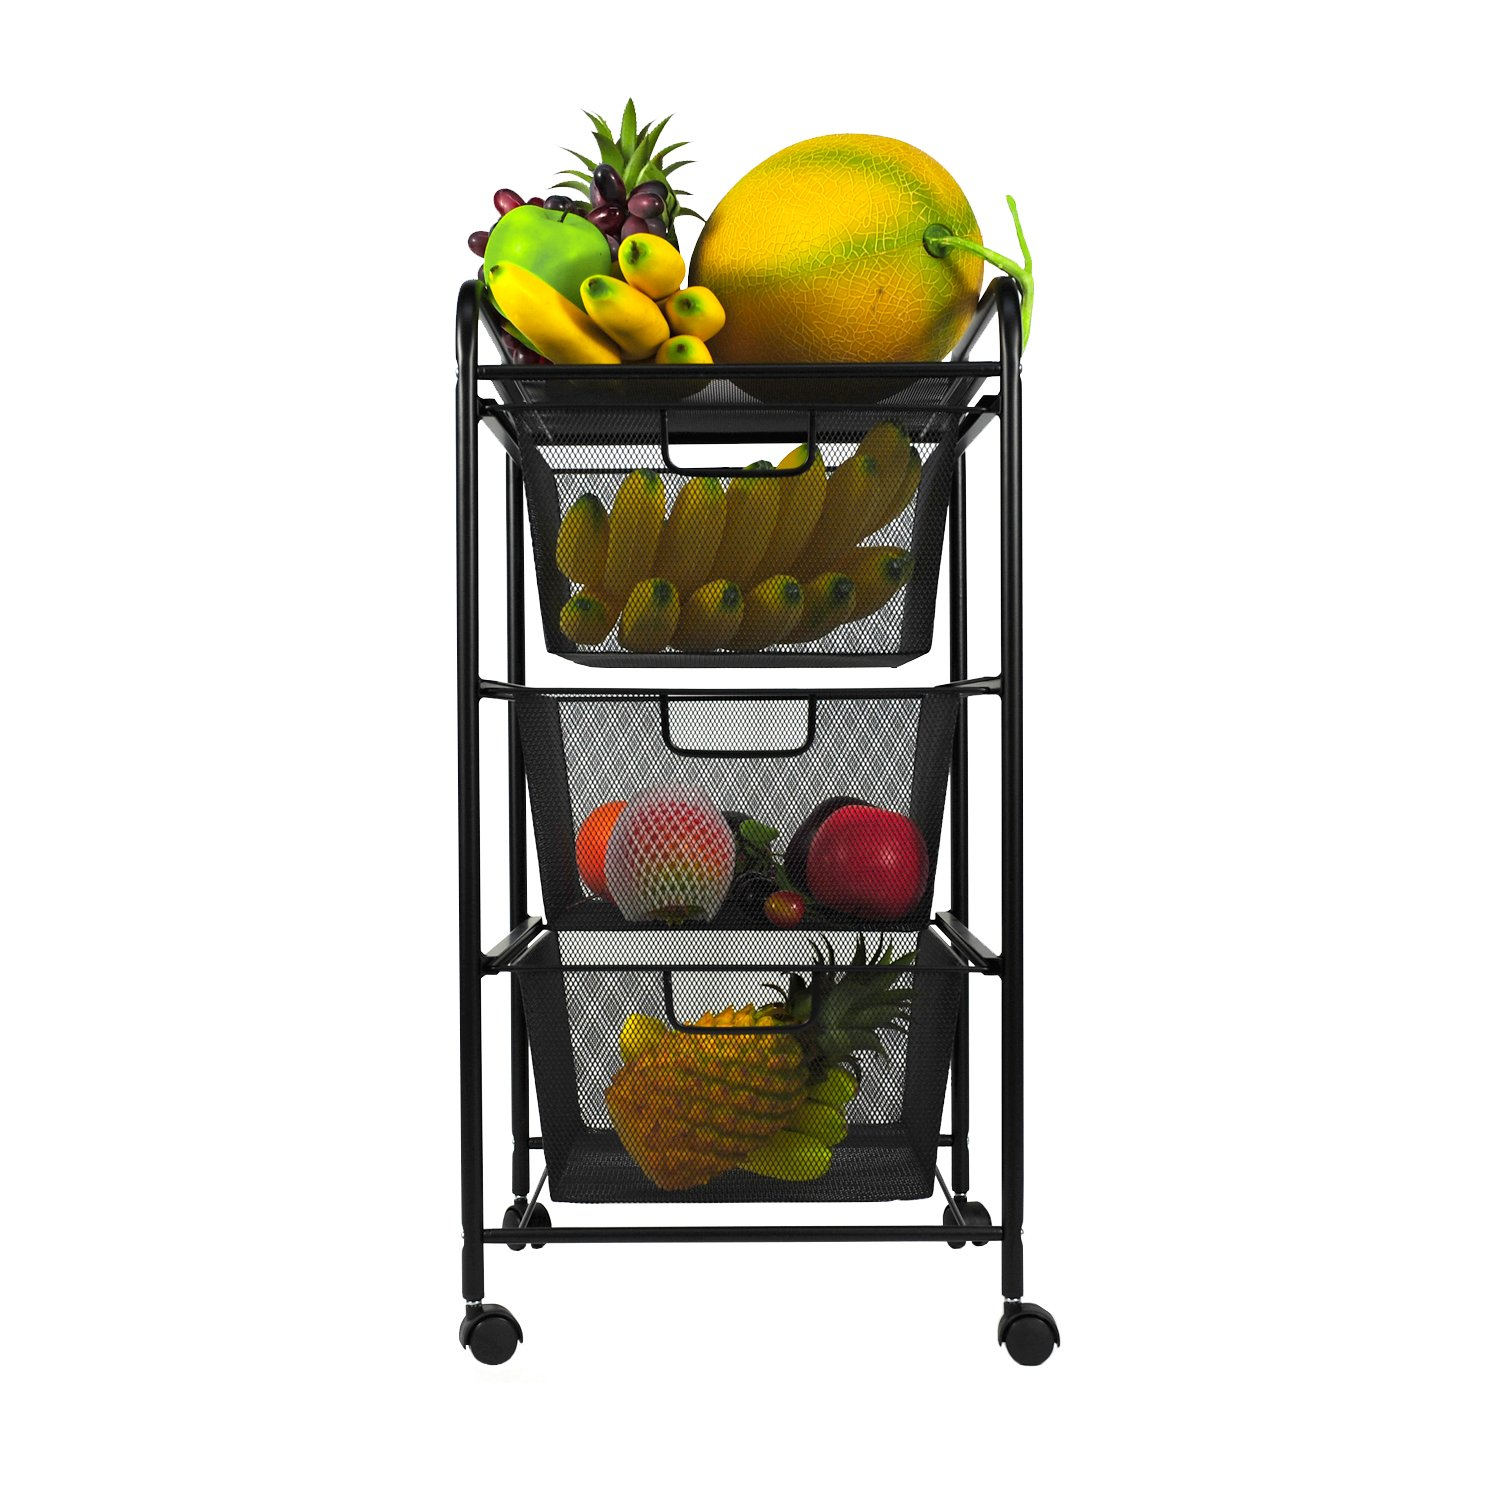 YIMU 3 Tier Metal Mesh Rolling Cart with 3 Drawers, Office& Kitchen Storage with Rolling Wheels, Black, L14 W13 H27 Inches by YIMU